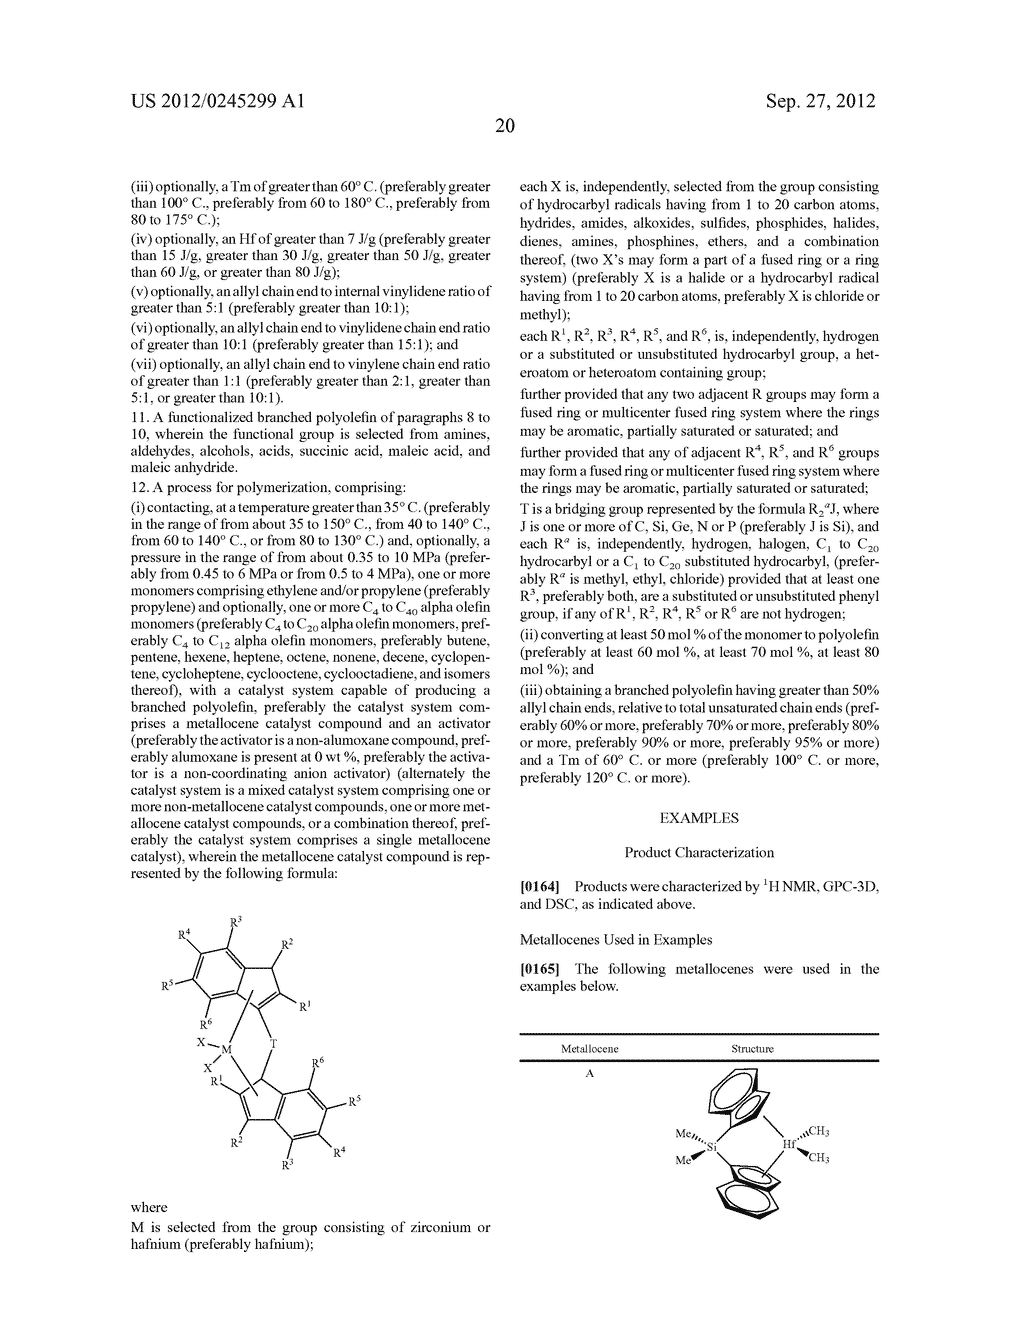 Branched Vinyl Terminated Polymers And Methods For Production Thereof - diagram, schematic, and image 22